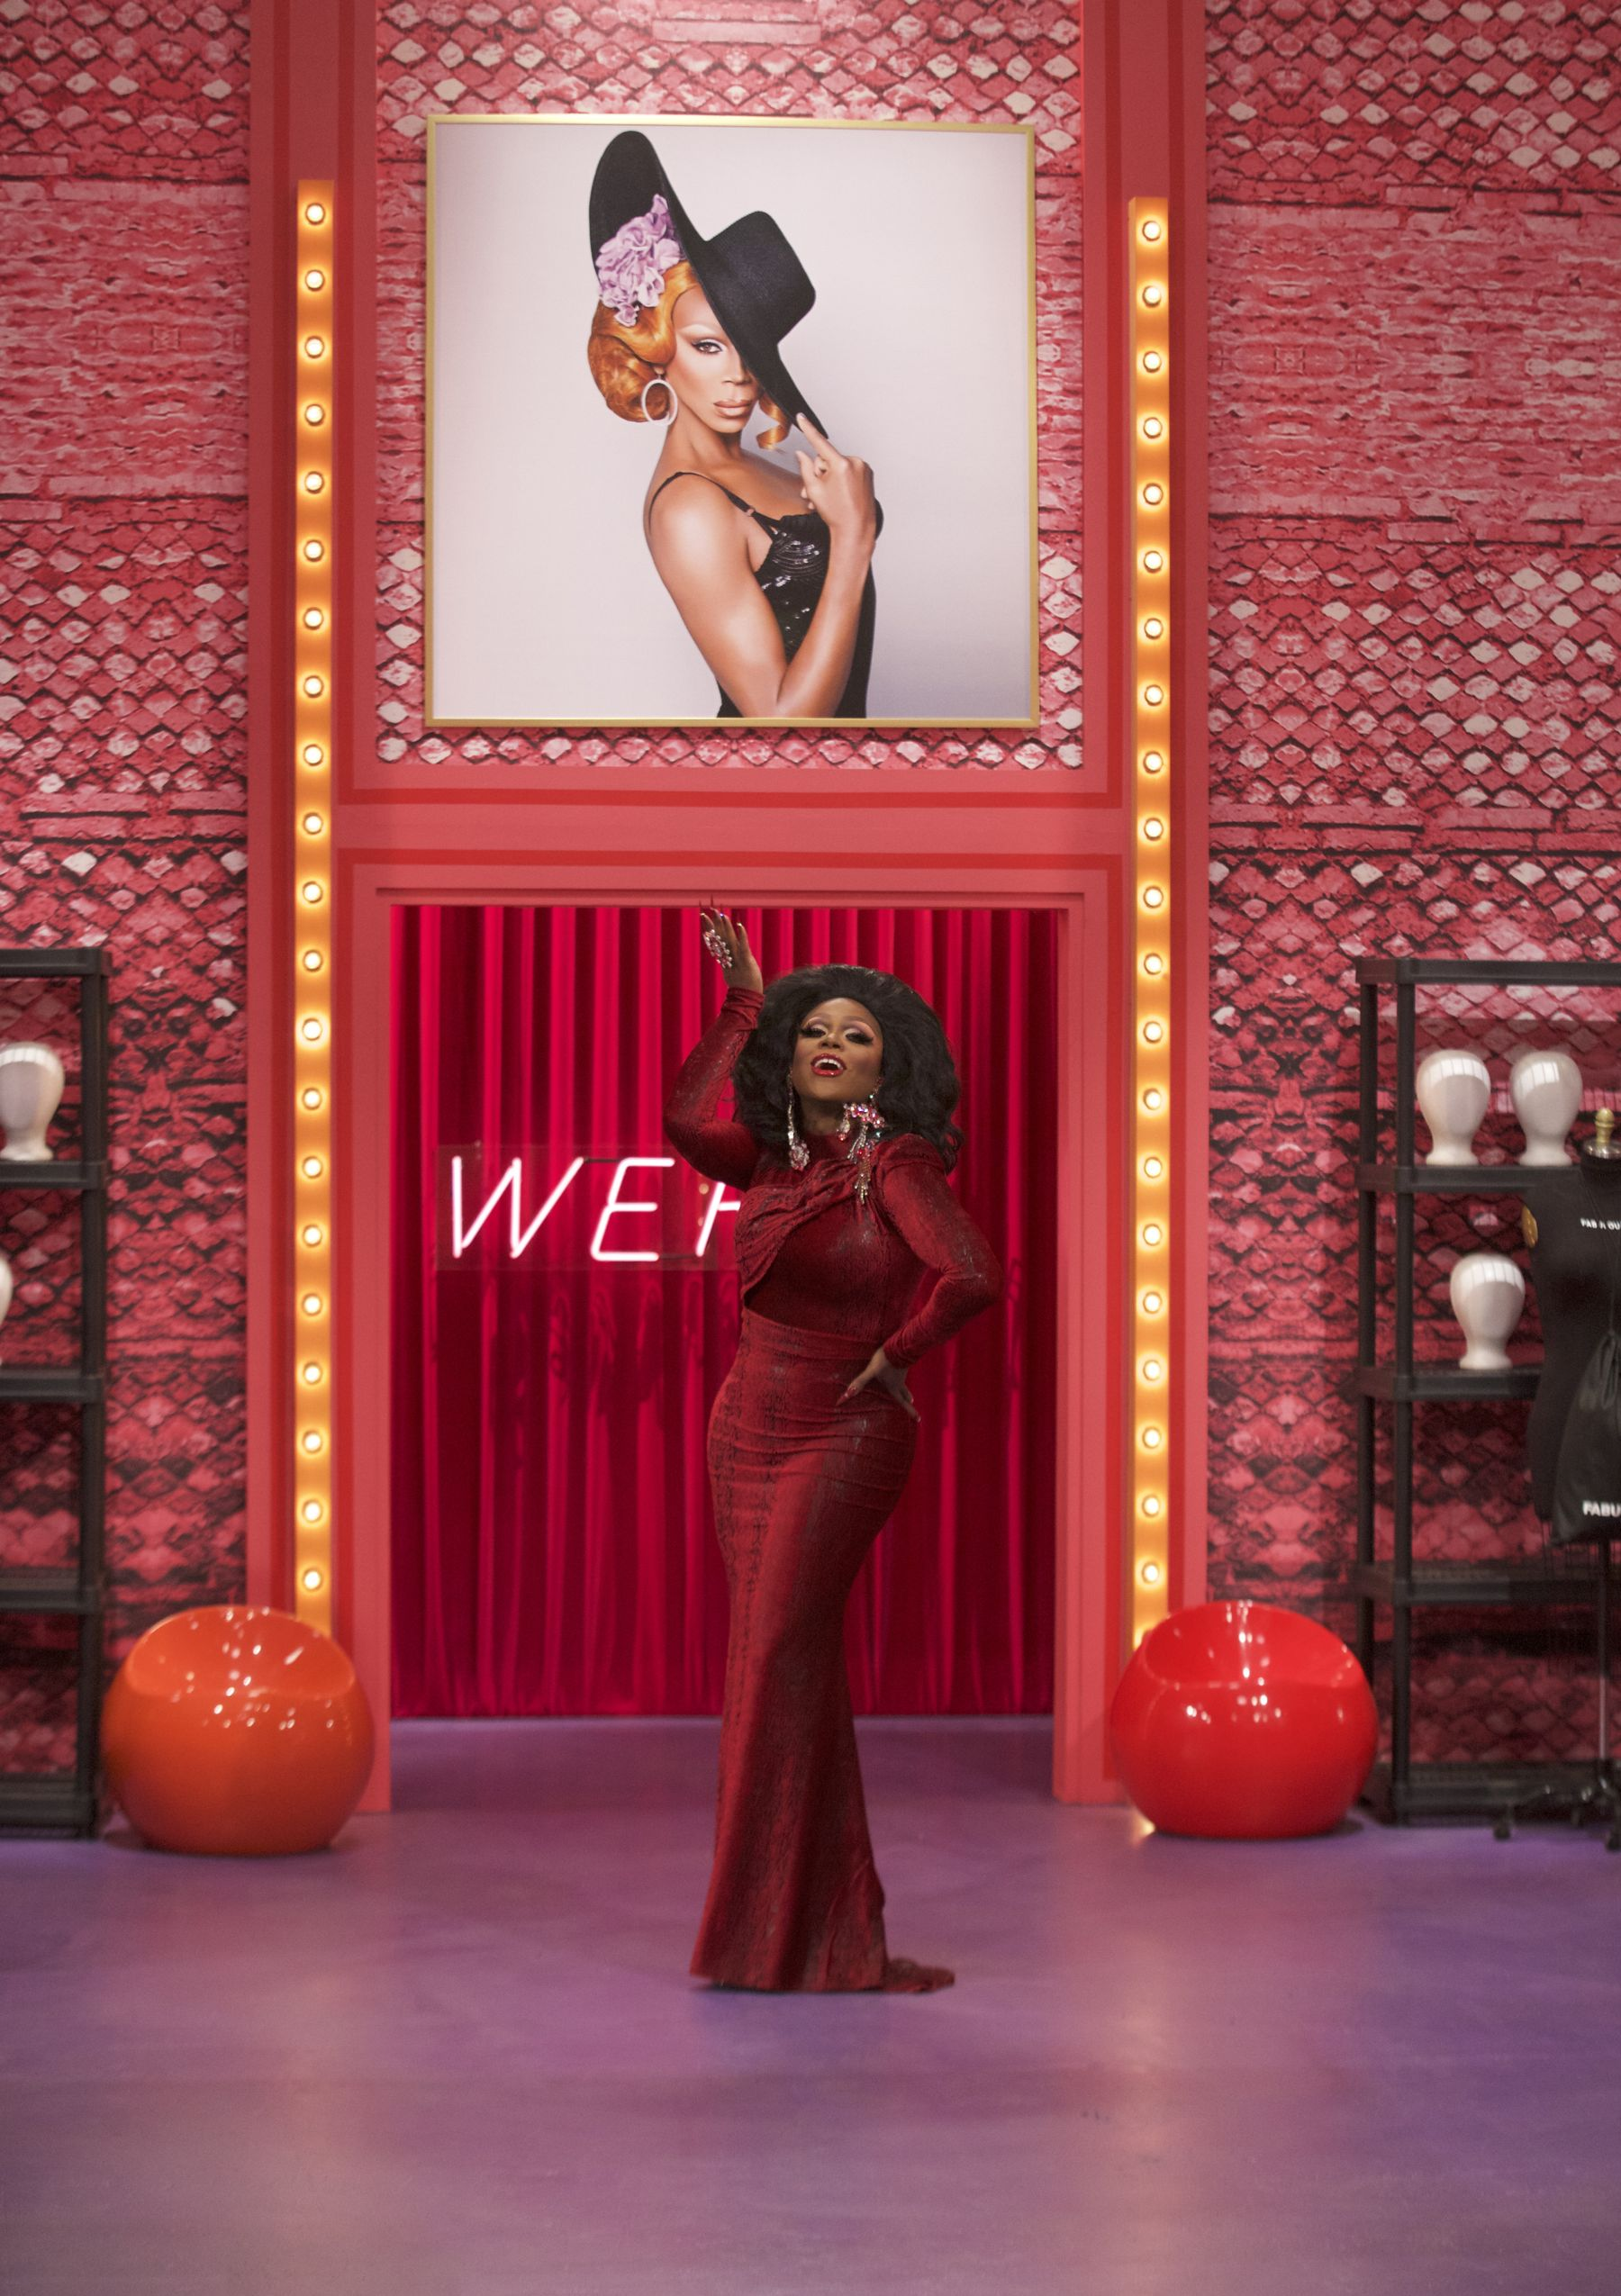 Mayhem Miller RuPaul's Drag Race Season 10